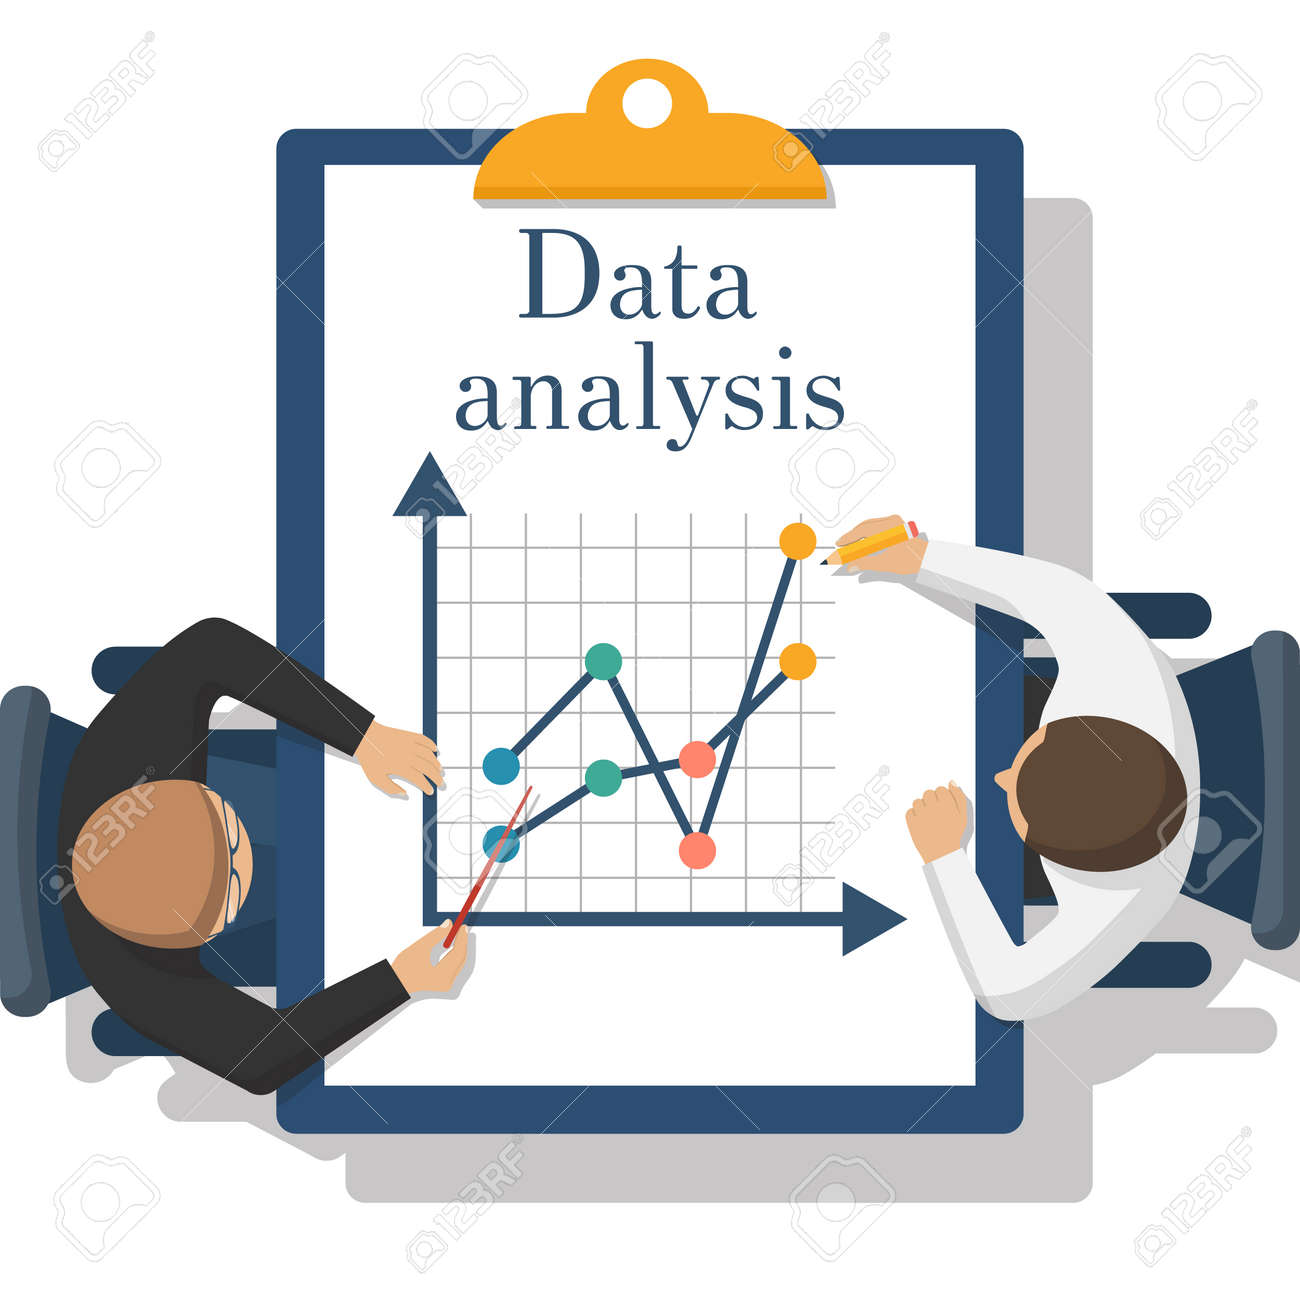 abstract data analysis two businessman analyze charts diagrams rh 123rf com date clipart for each day date clipart for each day